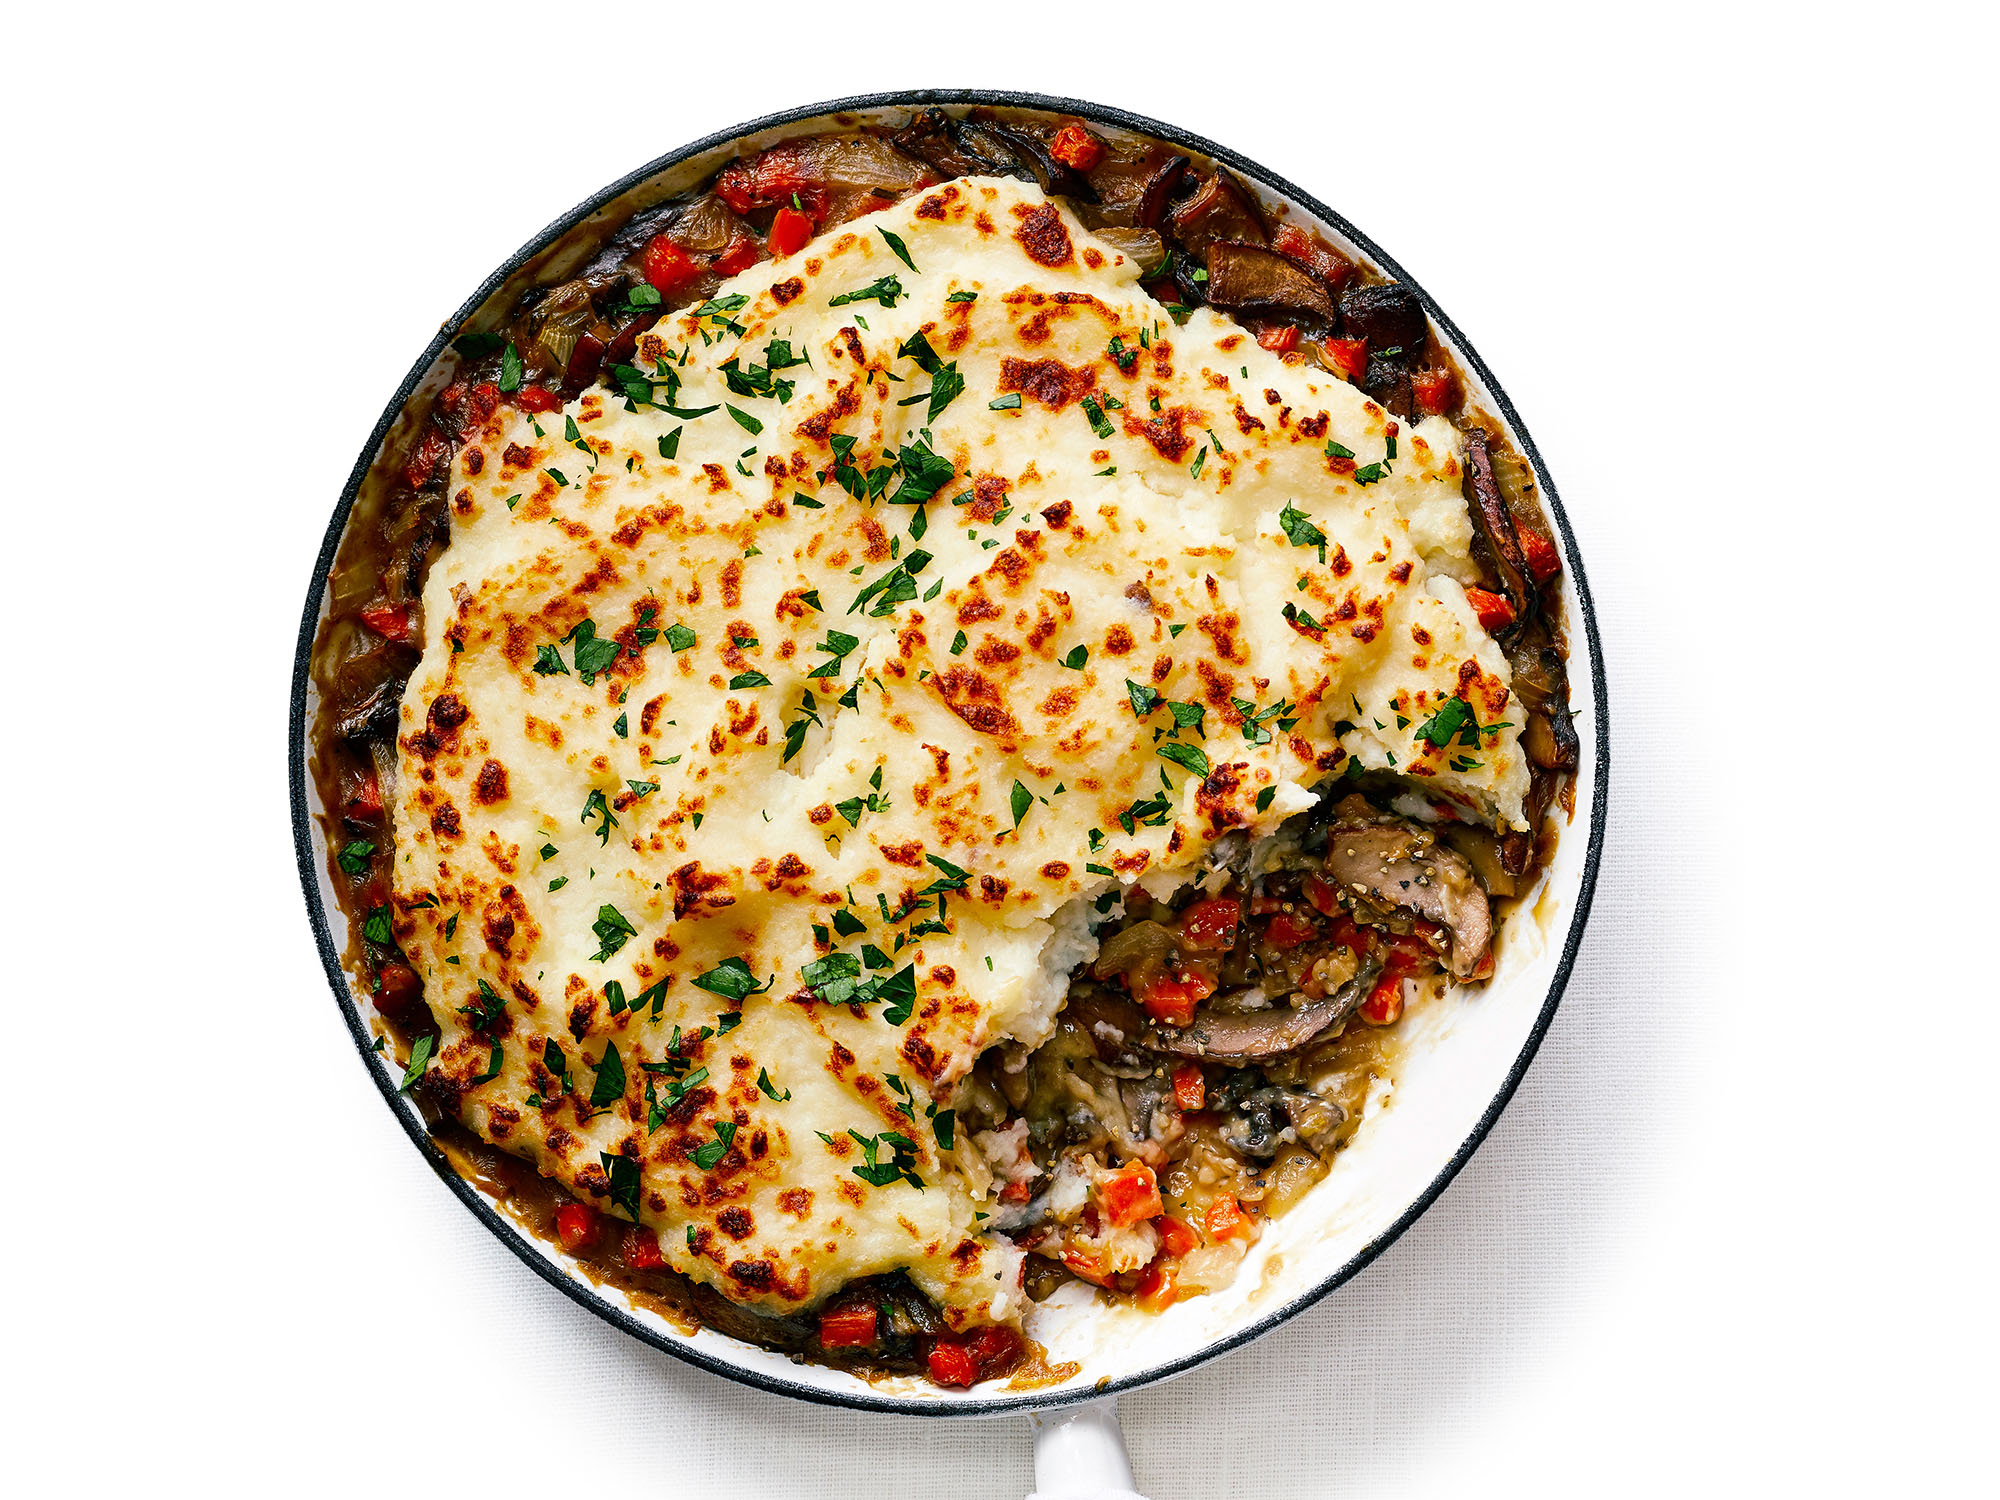 one-pan-poprtabella-mushroom-shepherds-pie-su.jpg